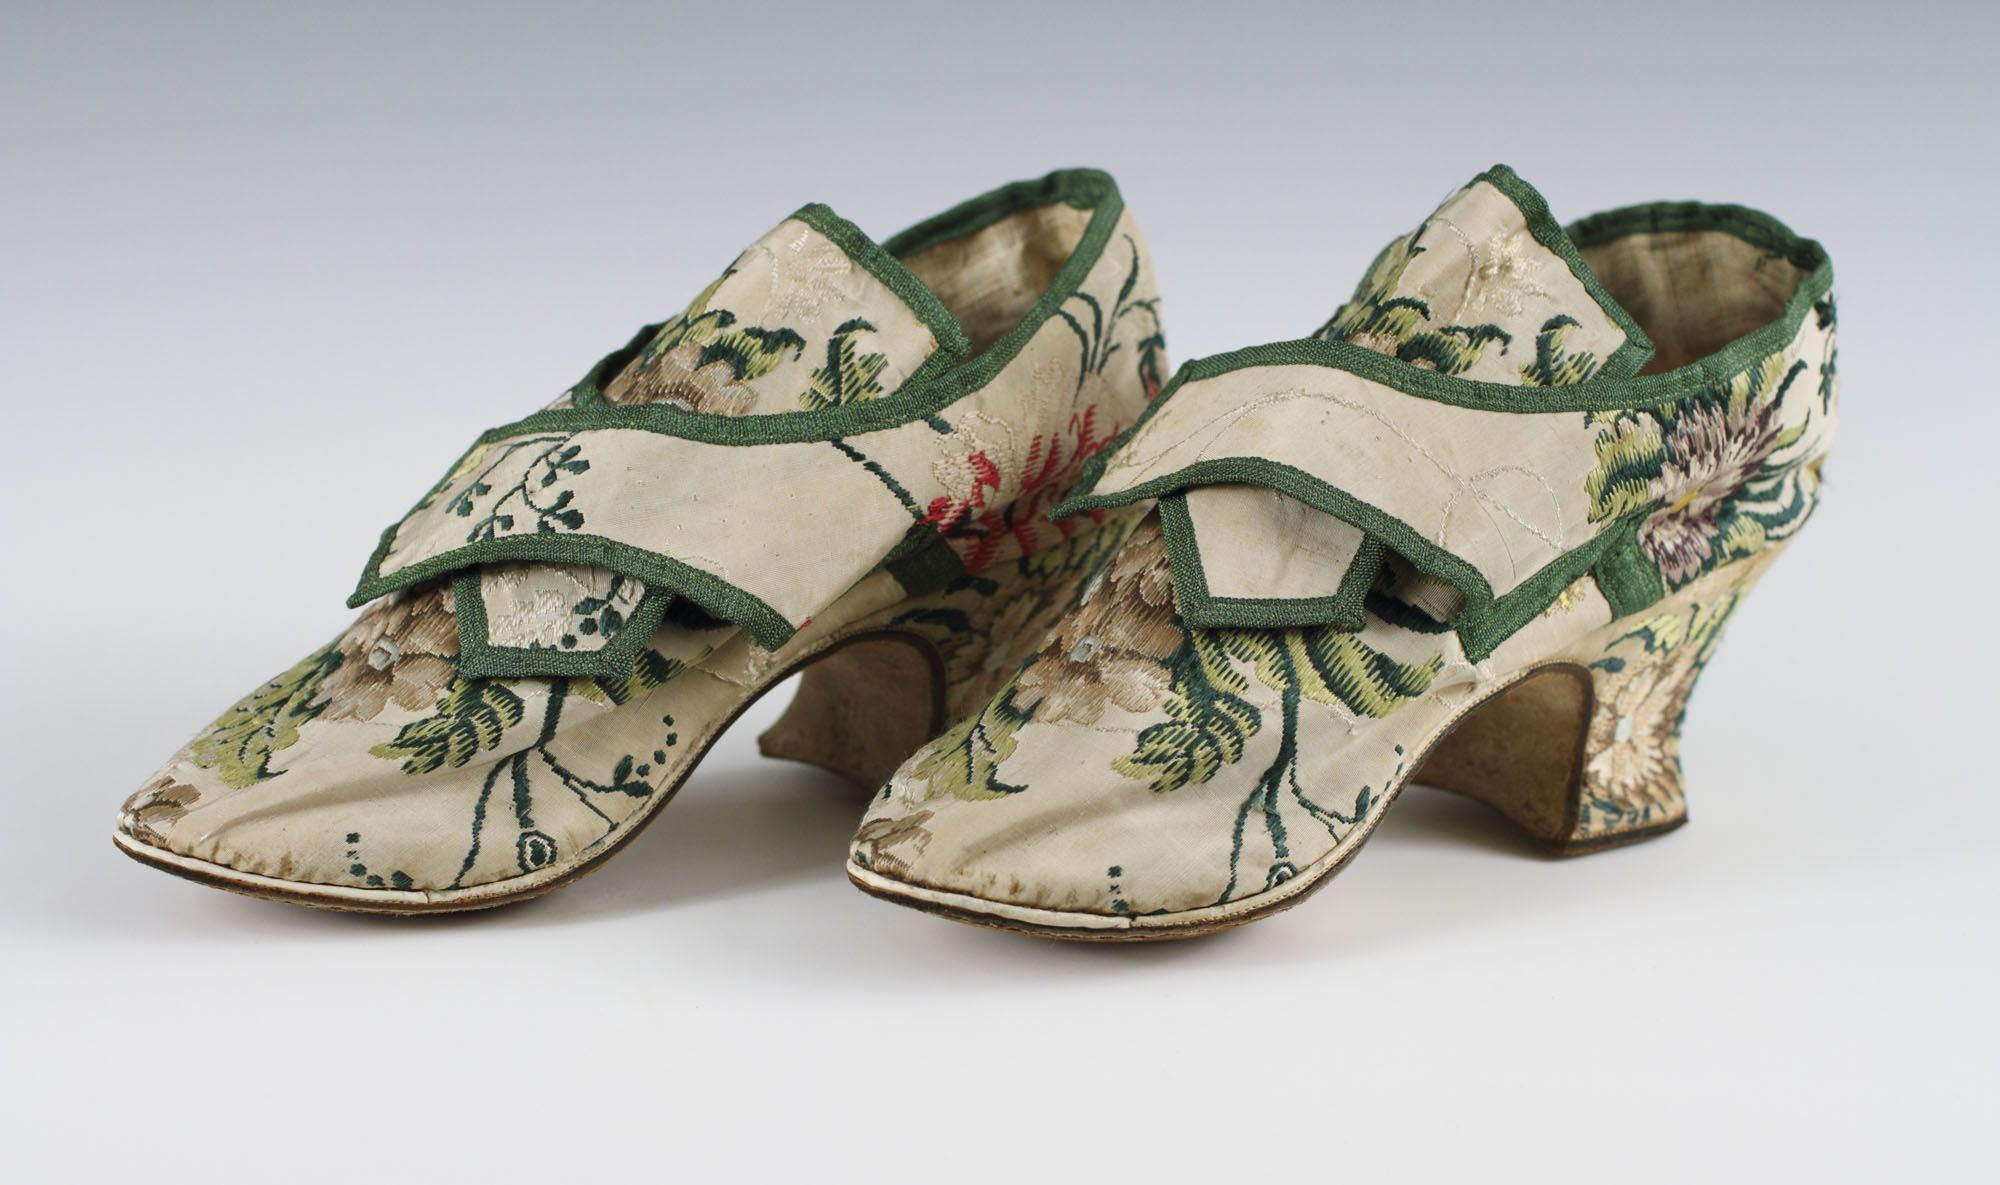 Pair of woman's shoes, England (Spitalfileds, probably desined by Anna Maria Garthwaite), c. 1740. Cream silk taffeta brocaded with floral motifs, green silk ribbon, linenn lining.